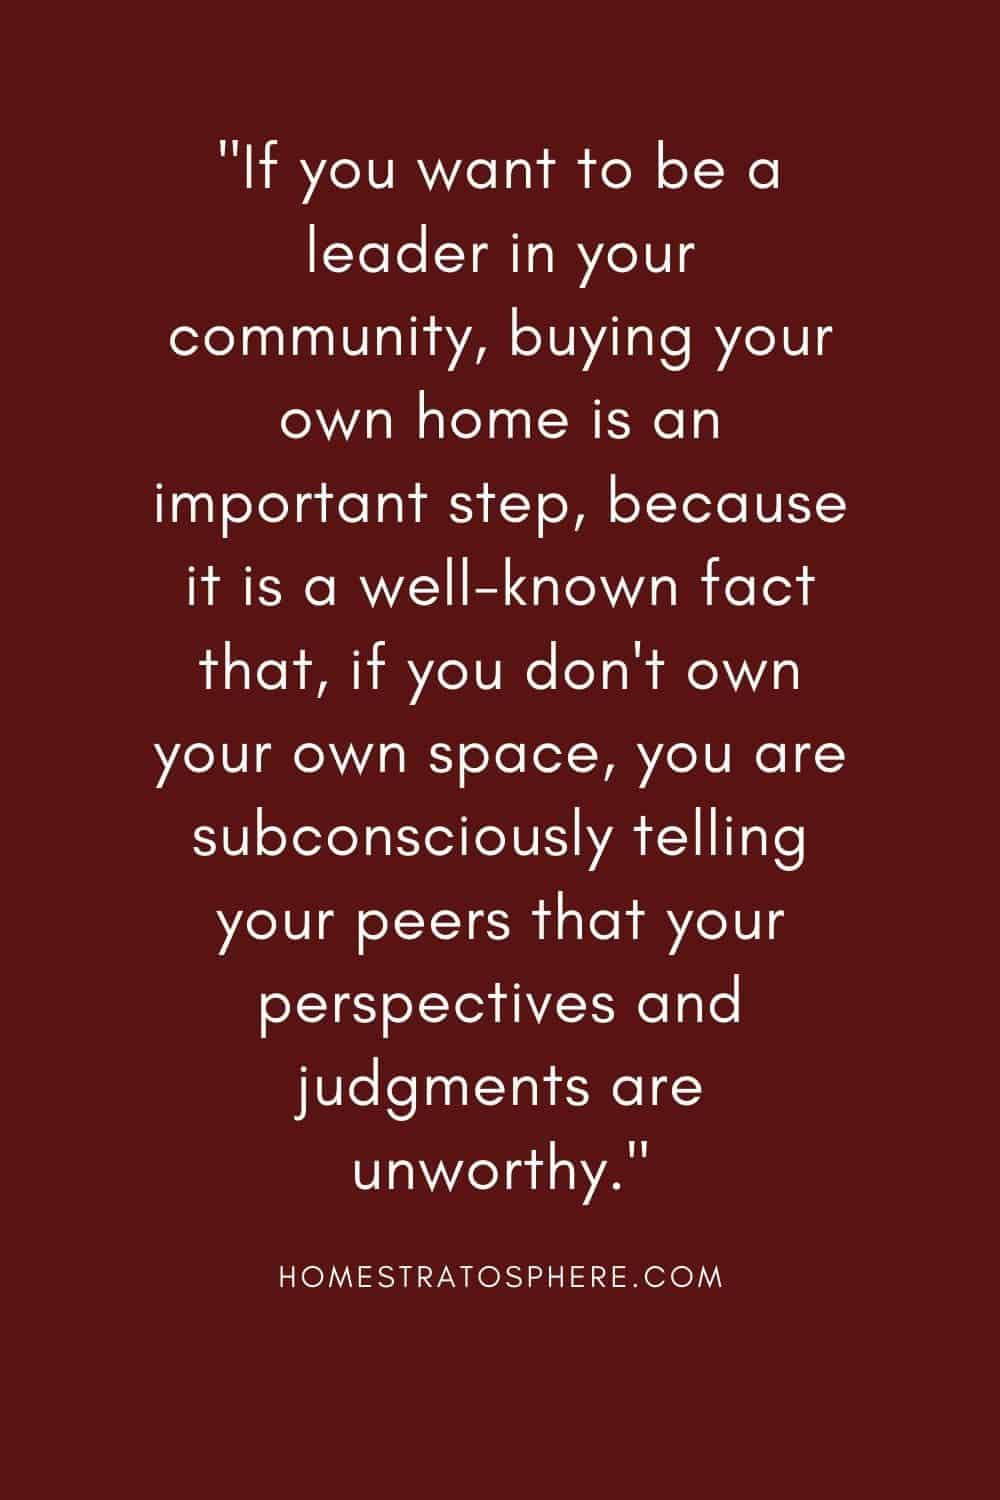 """If you want to be a leader in your community, buying your own home is an important step, because it is a well-known fact that, if you don't own your own space, you are subconsciously telling your peers that your perspectives and judgments are unworthy."""